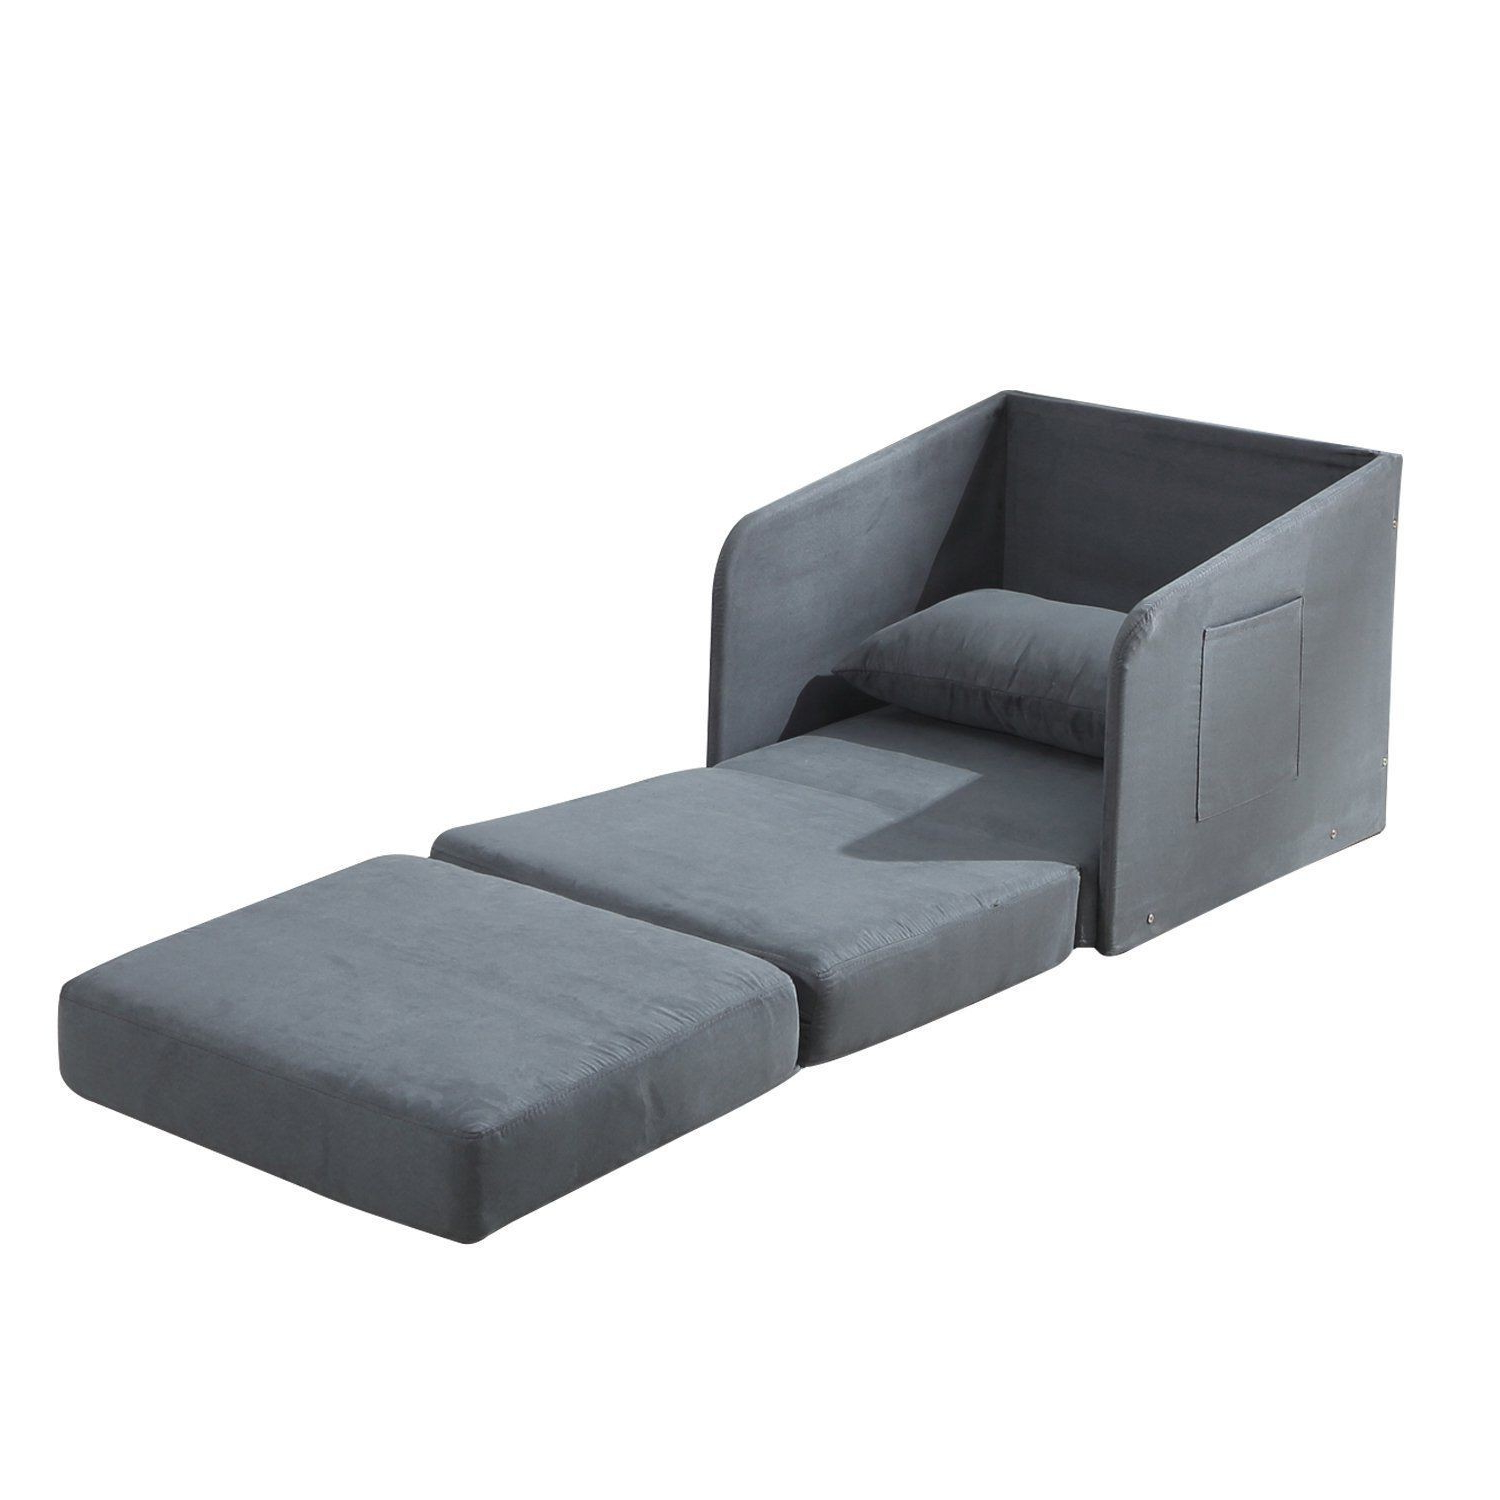 Chair Bed 3ldq Hom Faux Suede Single sofa Bed W Pillow Grey Aosom